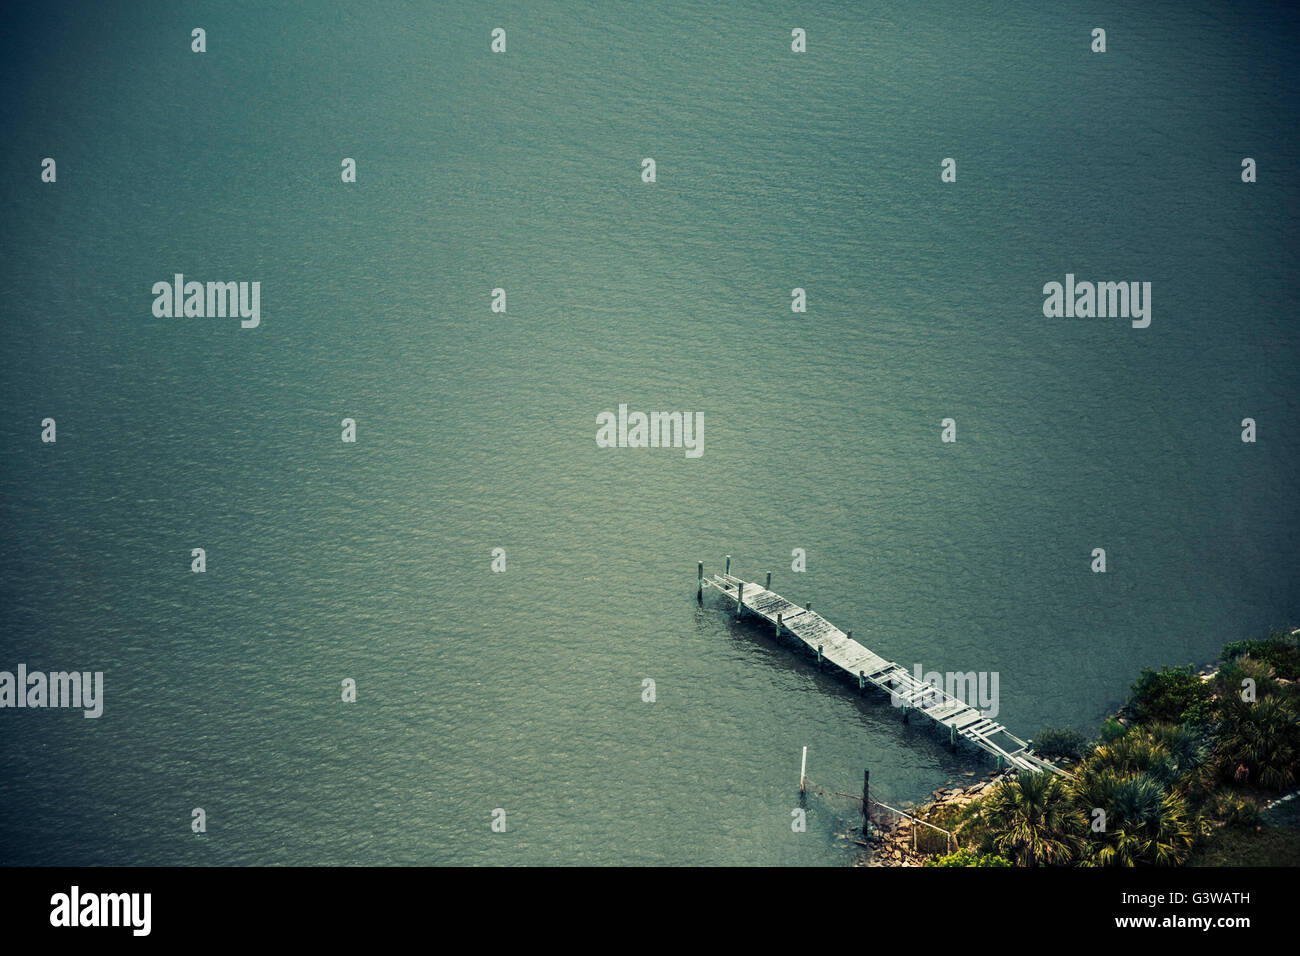 An aerial view of an old battered dock reaching into a blueish-green river/lake. - Stock Image